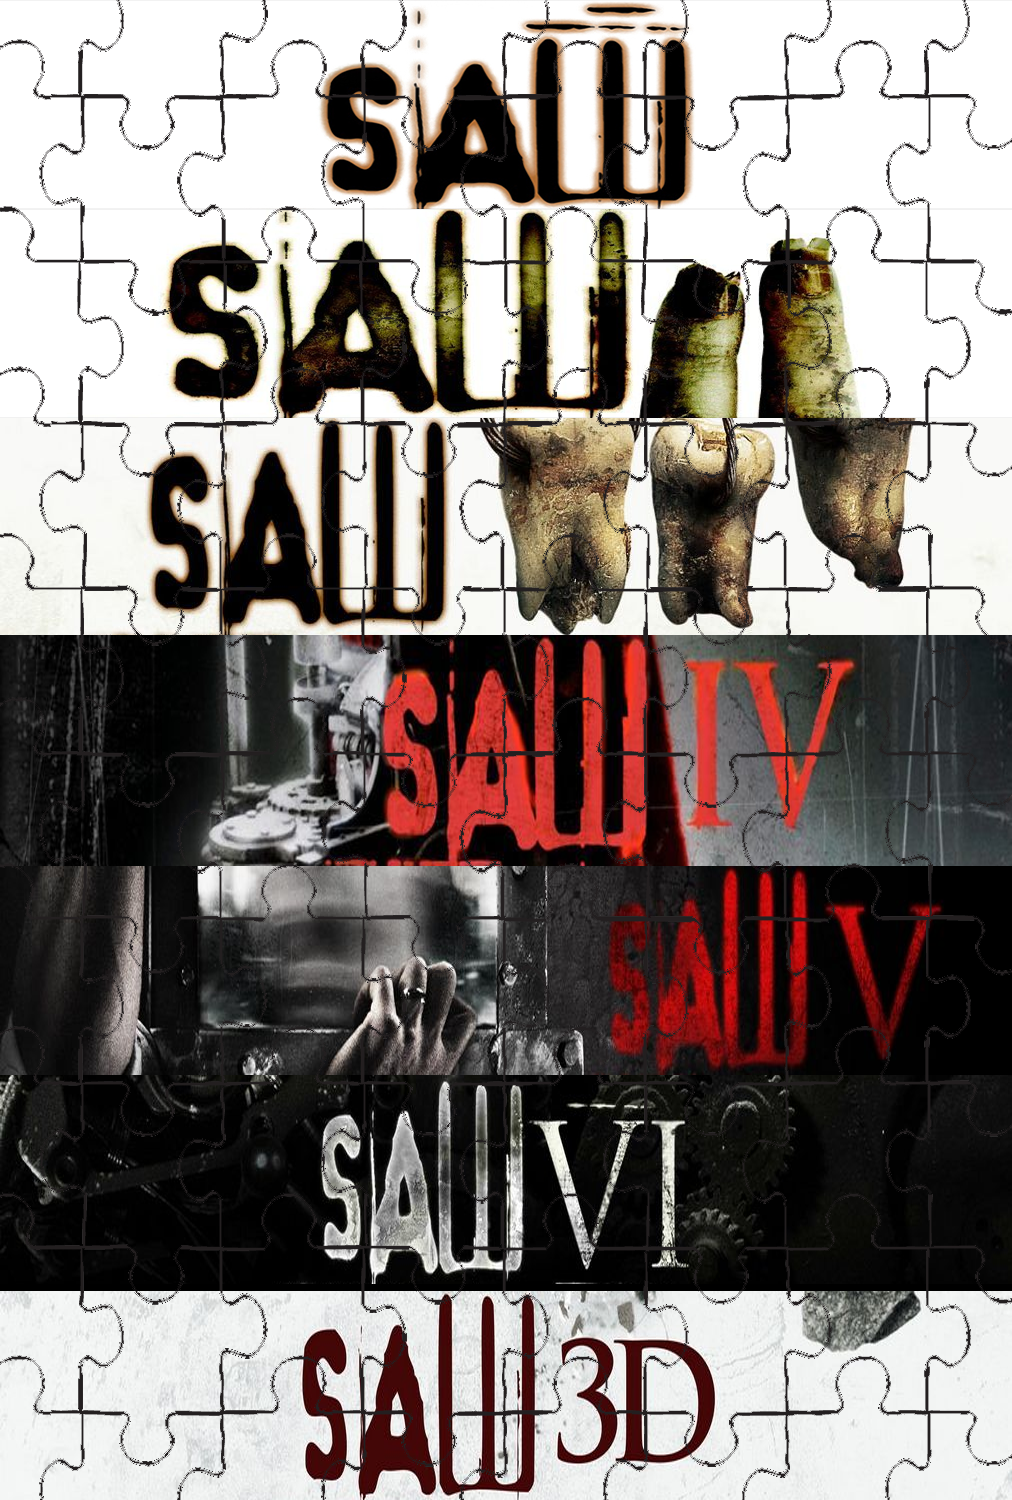 Saw (franchise)